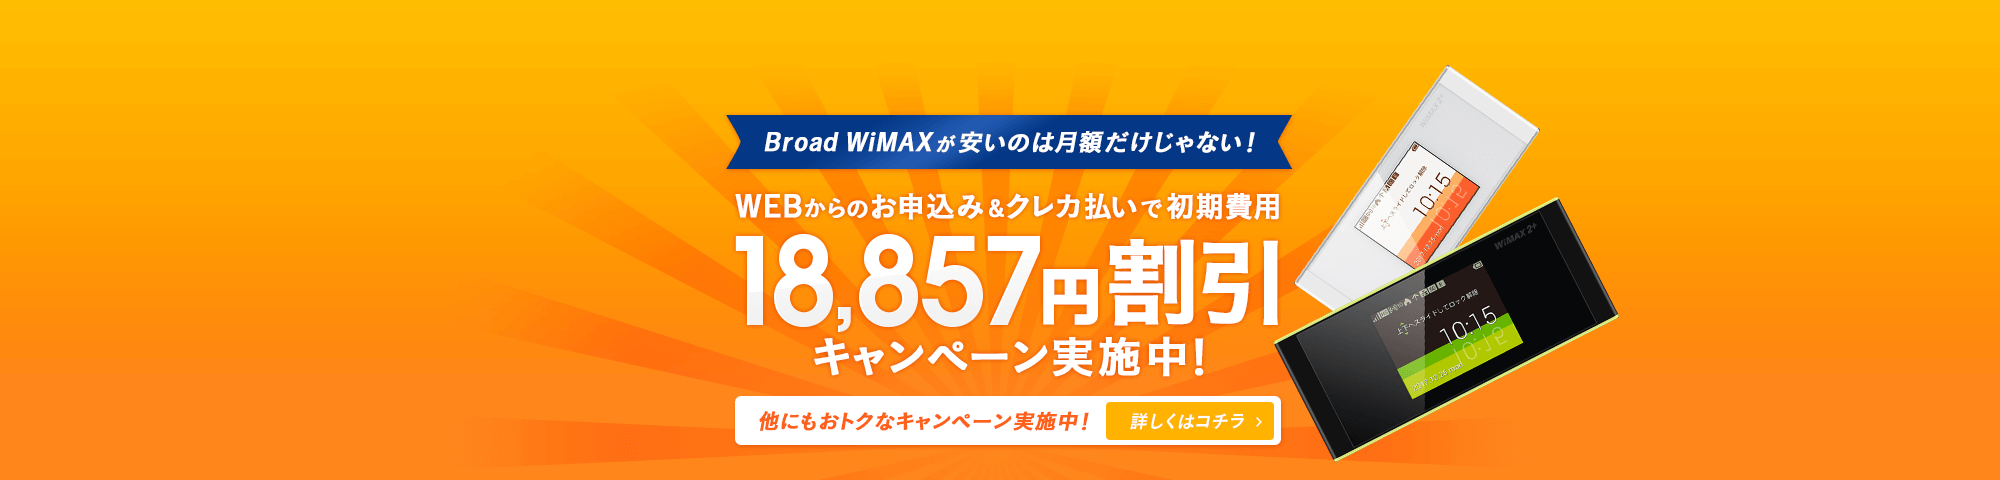 Broad WiMAX 2000×480_2のバナーデザイン